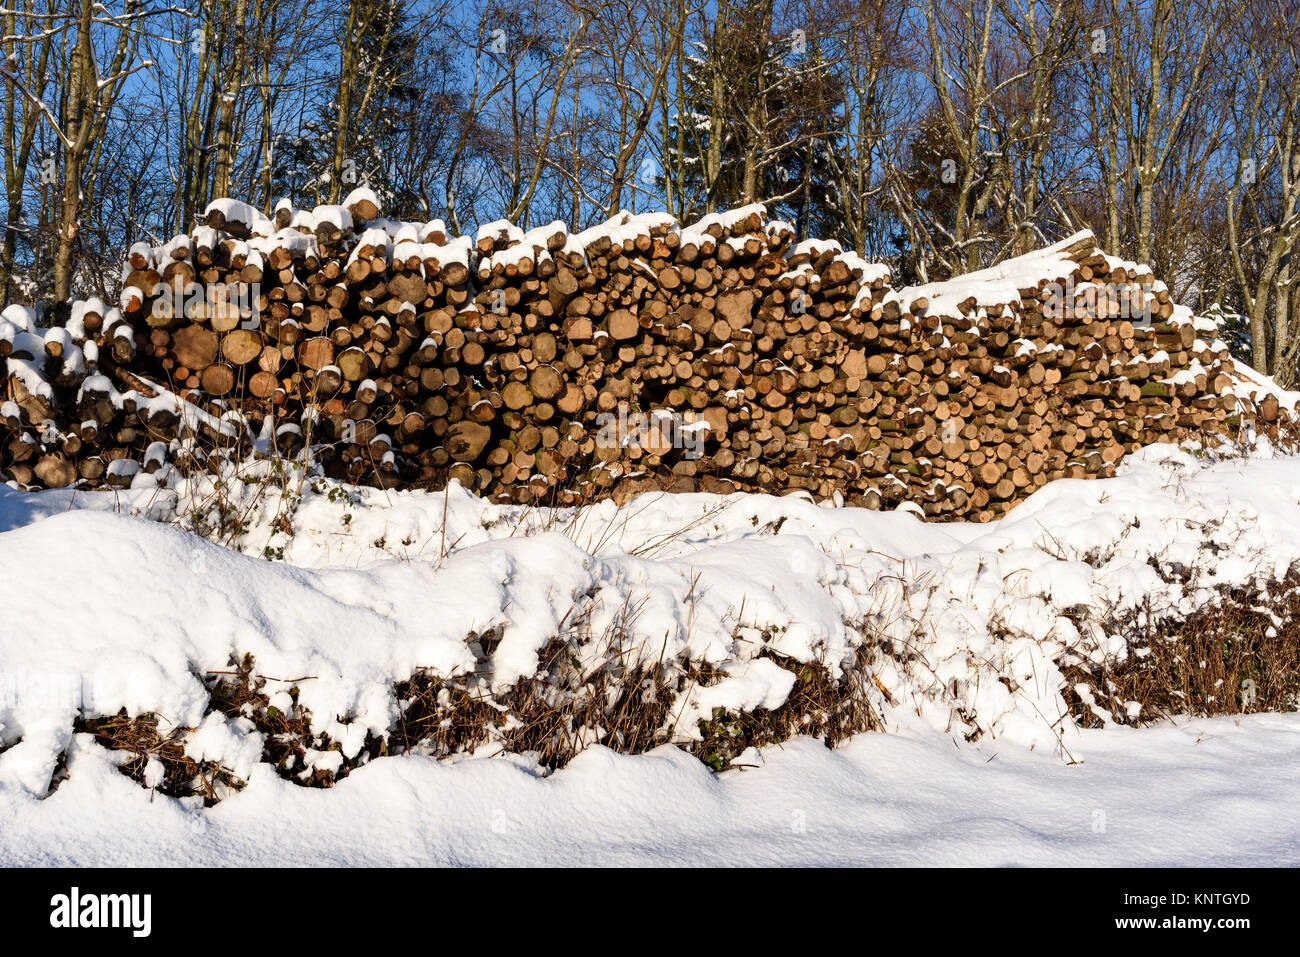 Snowy scene North Wales logs logpile - Stock Image